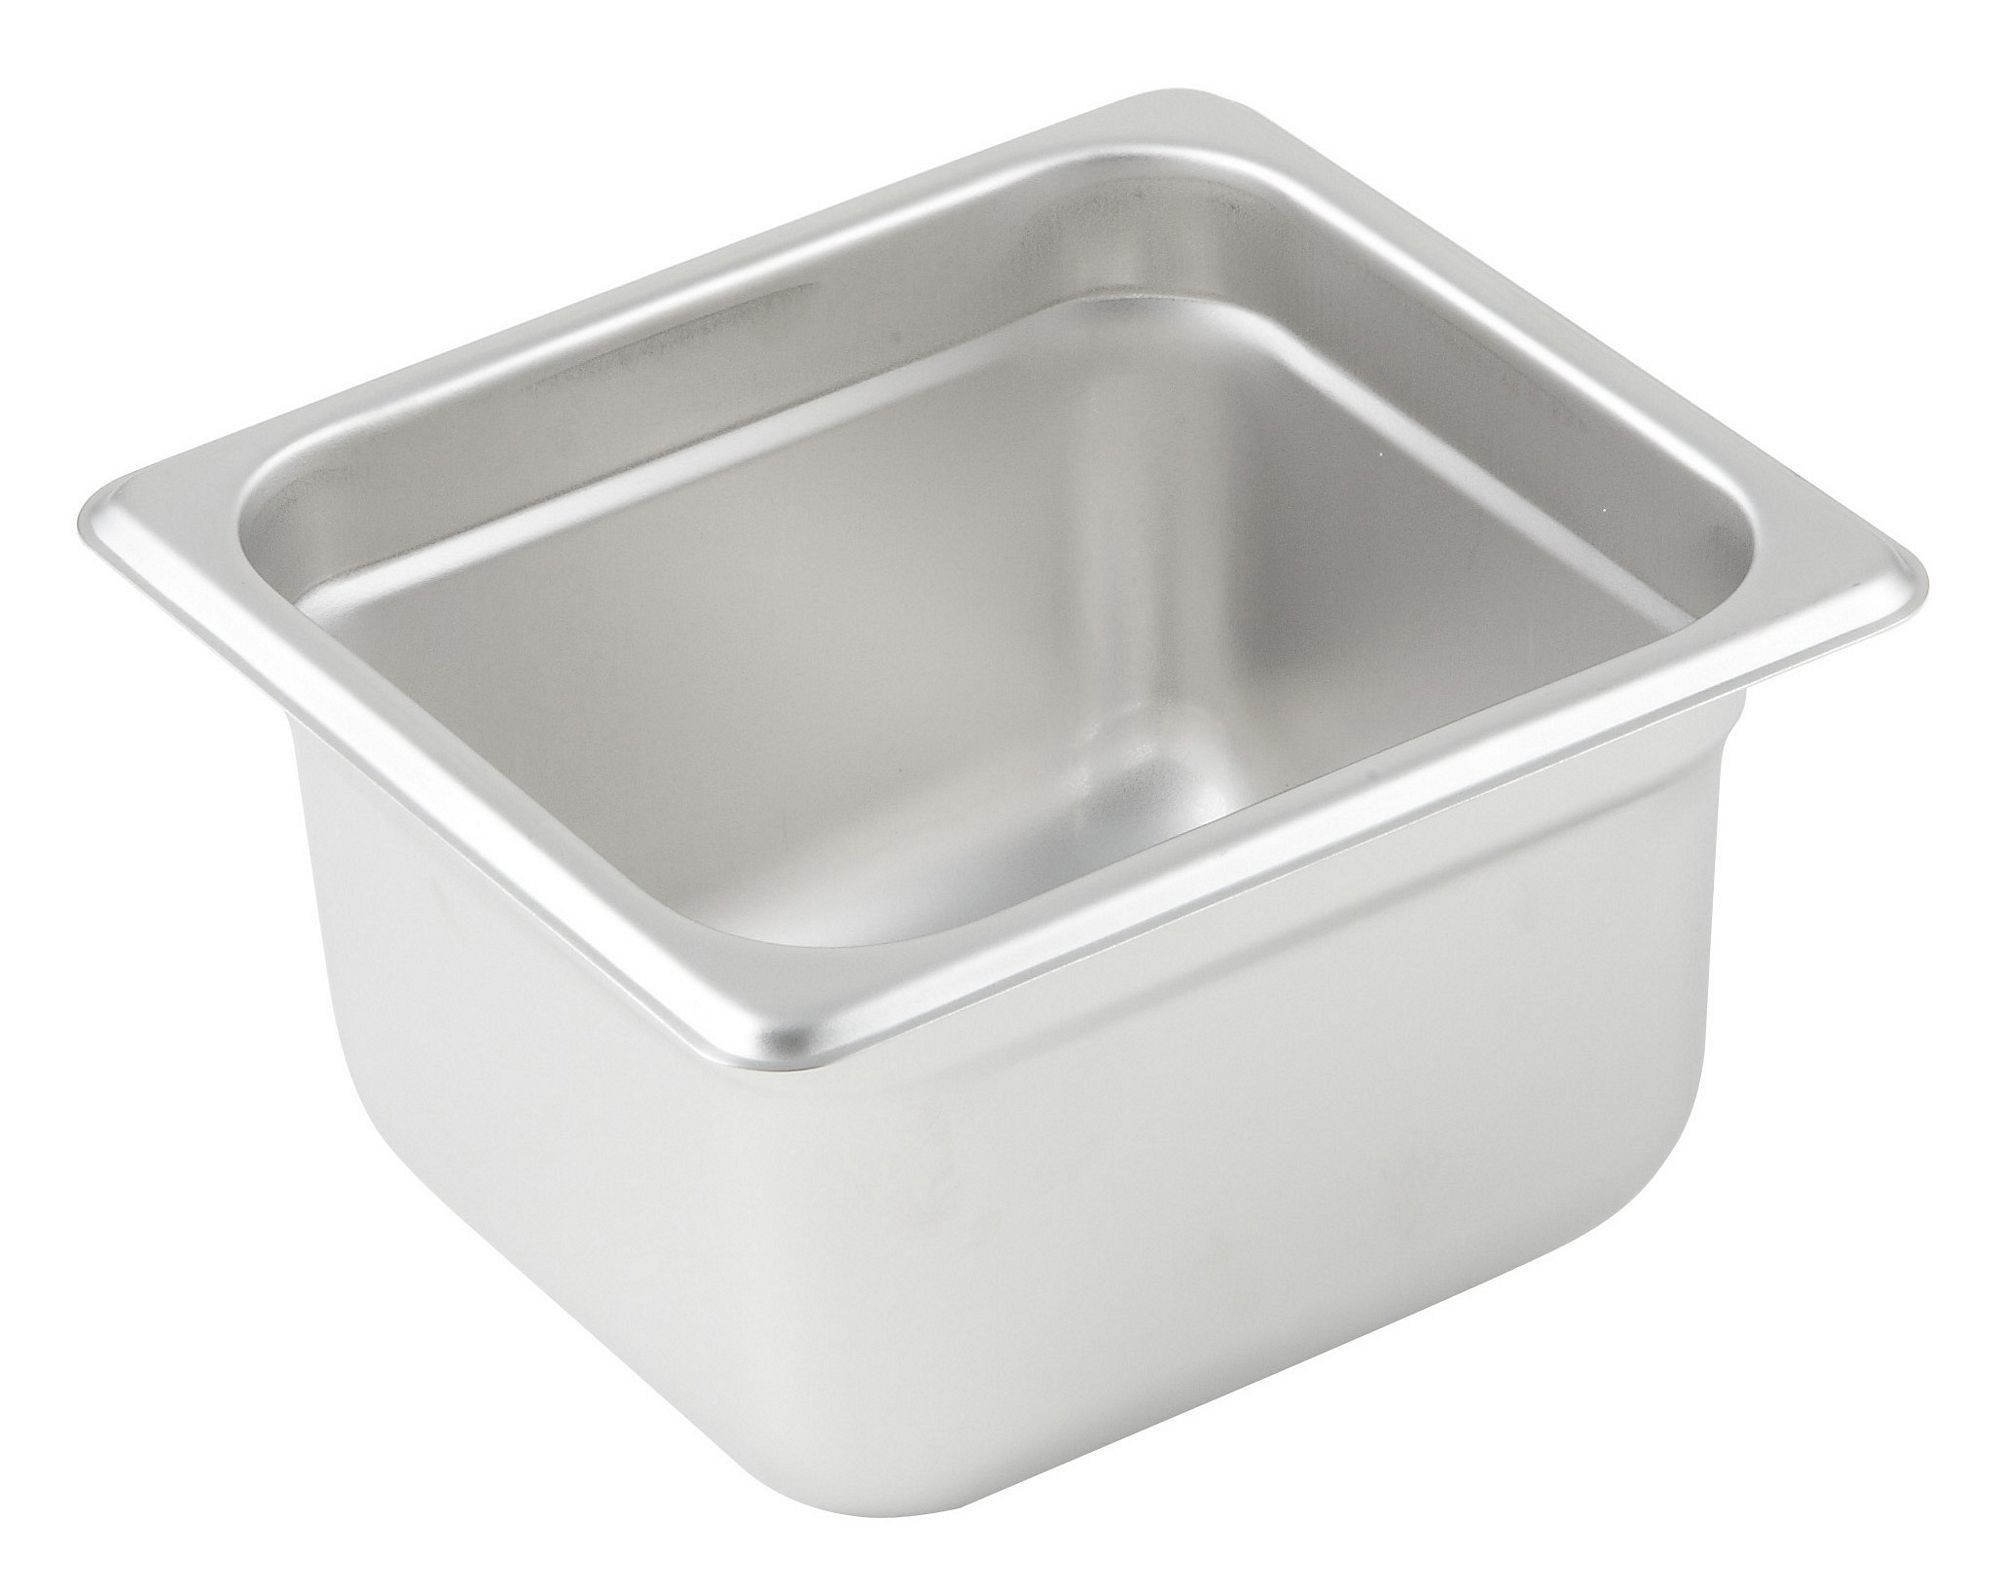 "Winco SPJL-604 1/6 Size Anti-Jam 25 Gauge Steam Table Pan 4"" Deep"